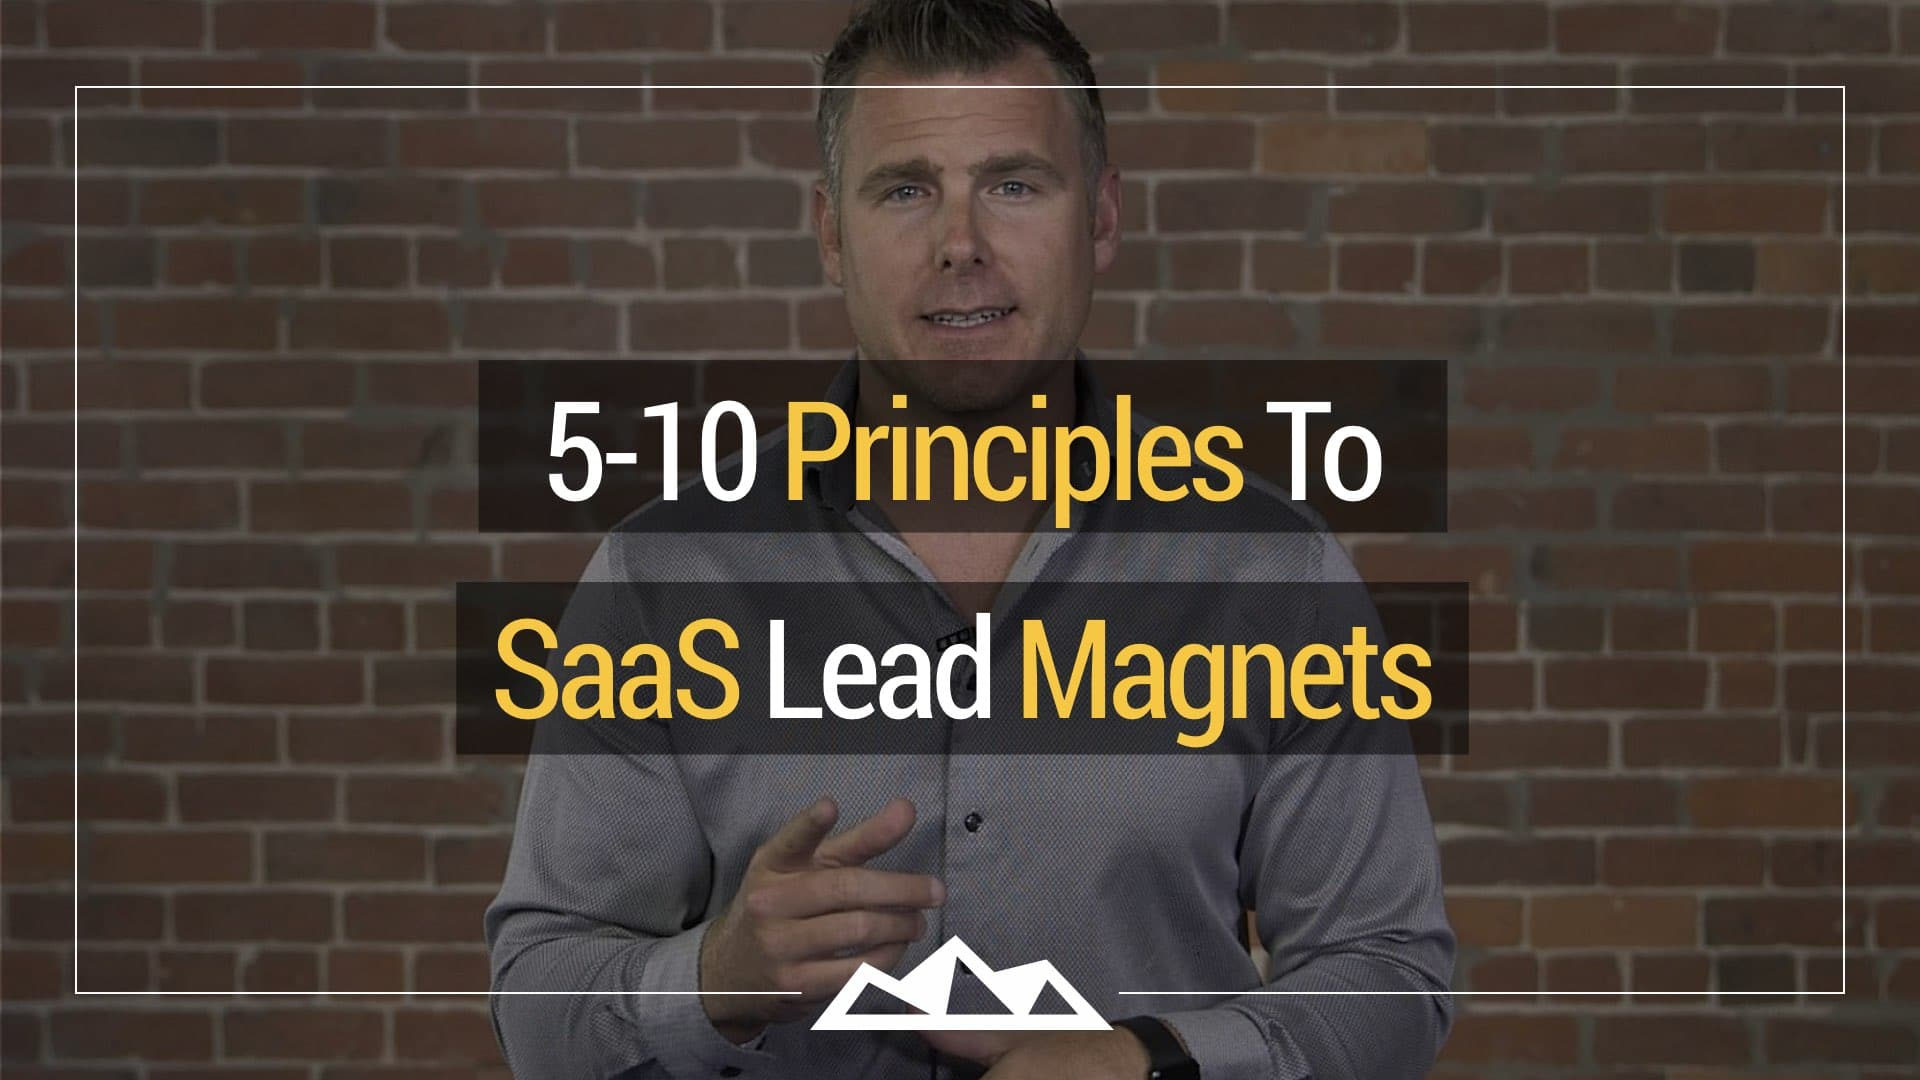 The 5-10 Principle for Creating High Converting SaaS Lead Magnets